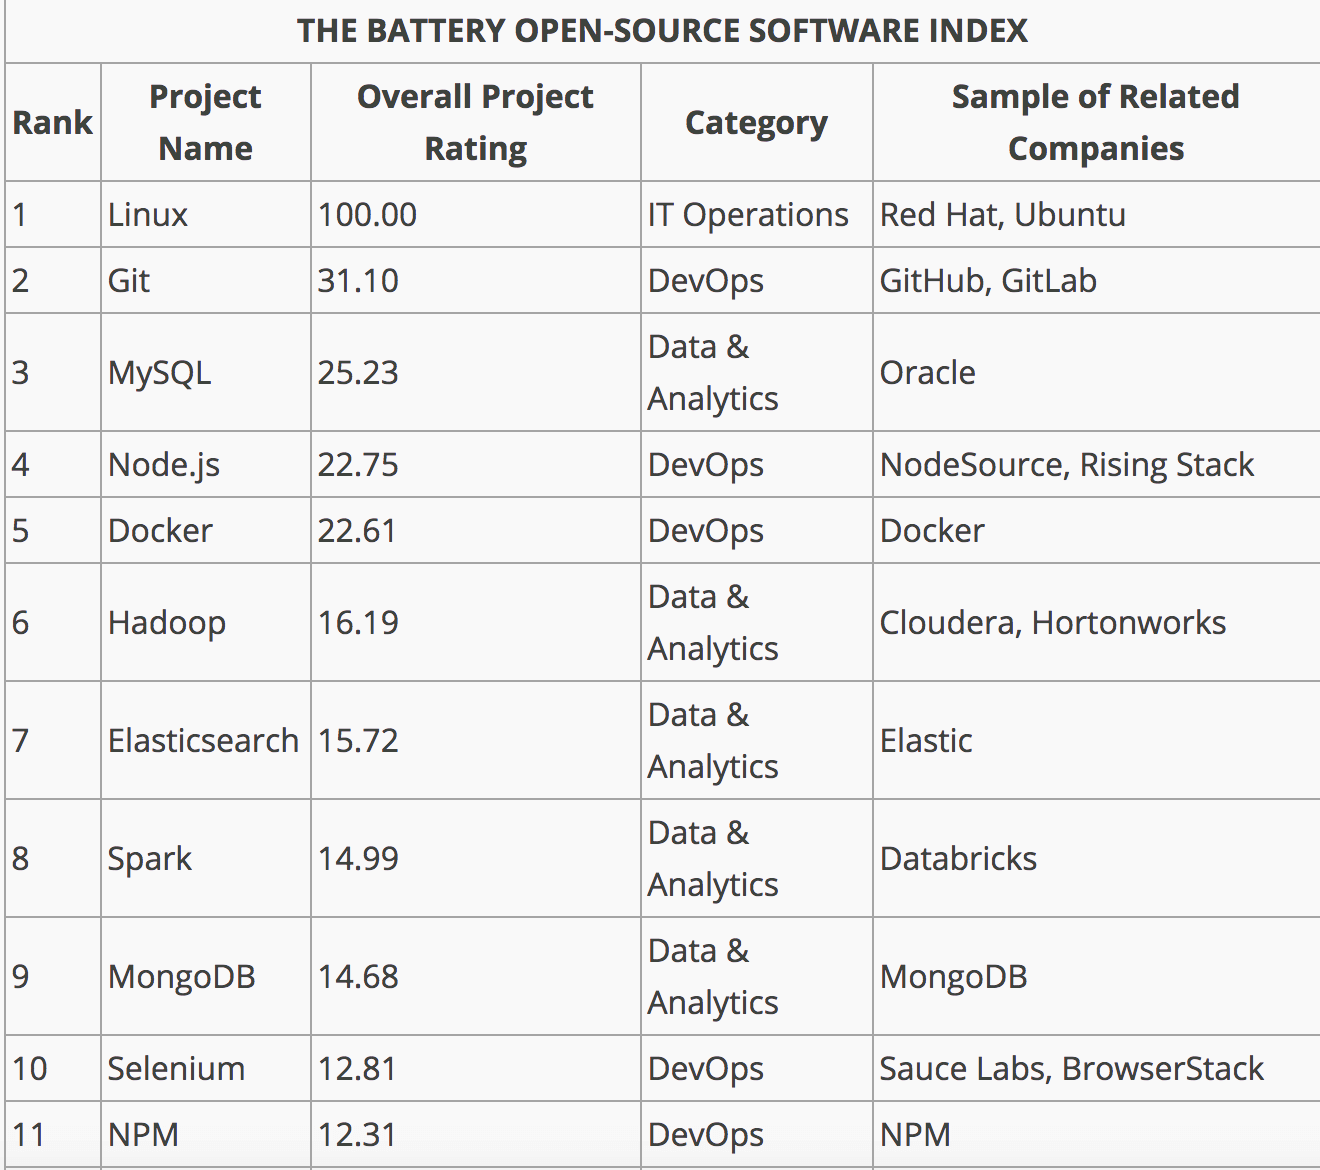 Battery Ventures - Open Source List with Node.js as the 4th most important